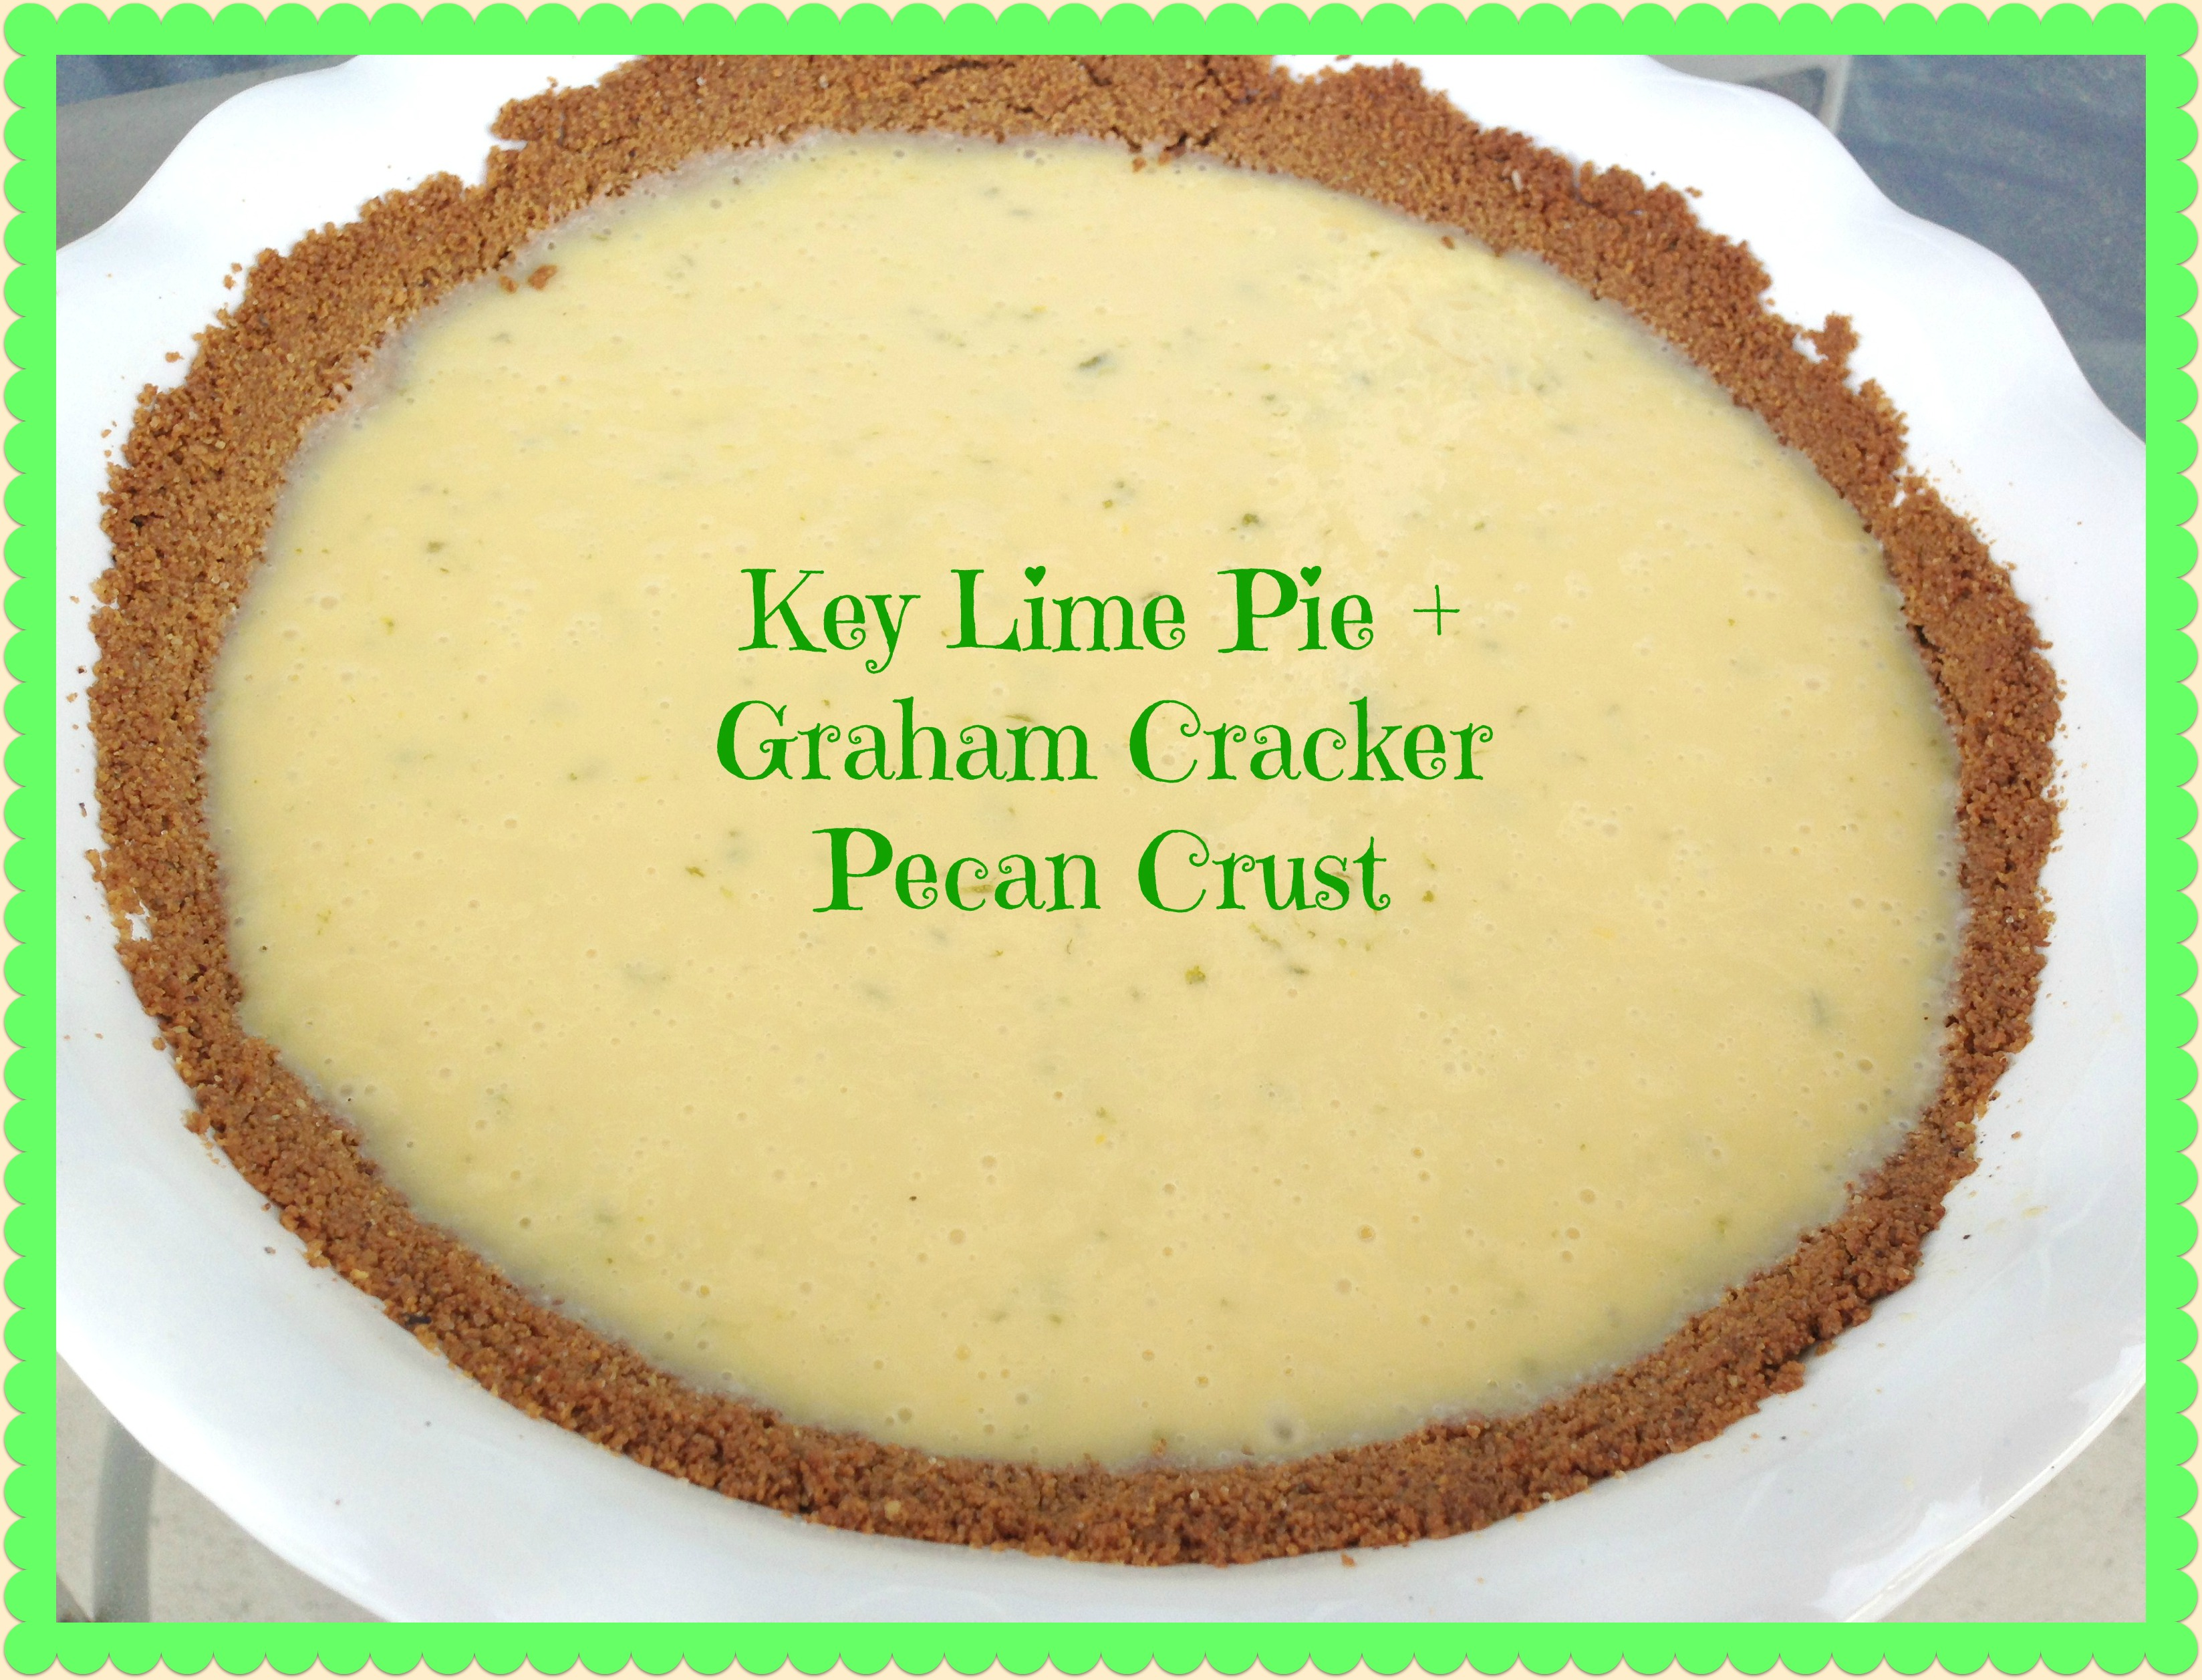 ... key lime pie you know with juice from actual key limes those suckers